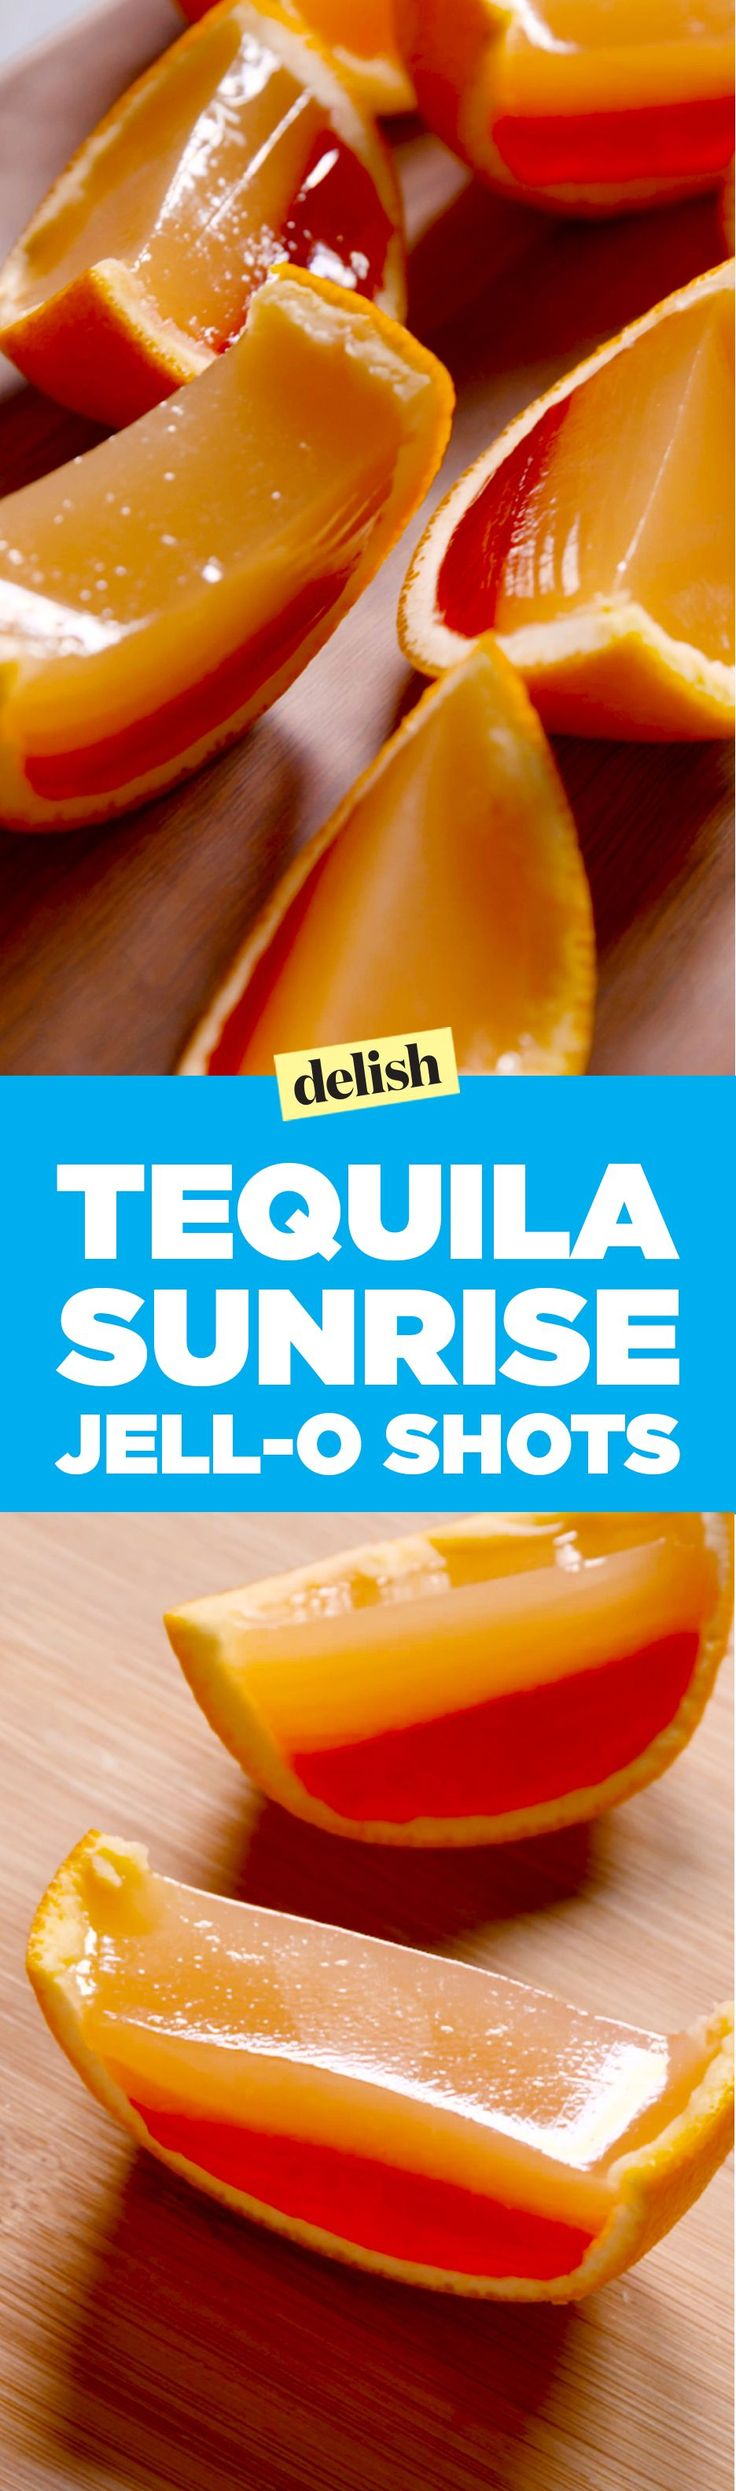 Best 25 tequila sunrise ideas on pinterest tequila for Best tequila shot recipes